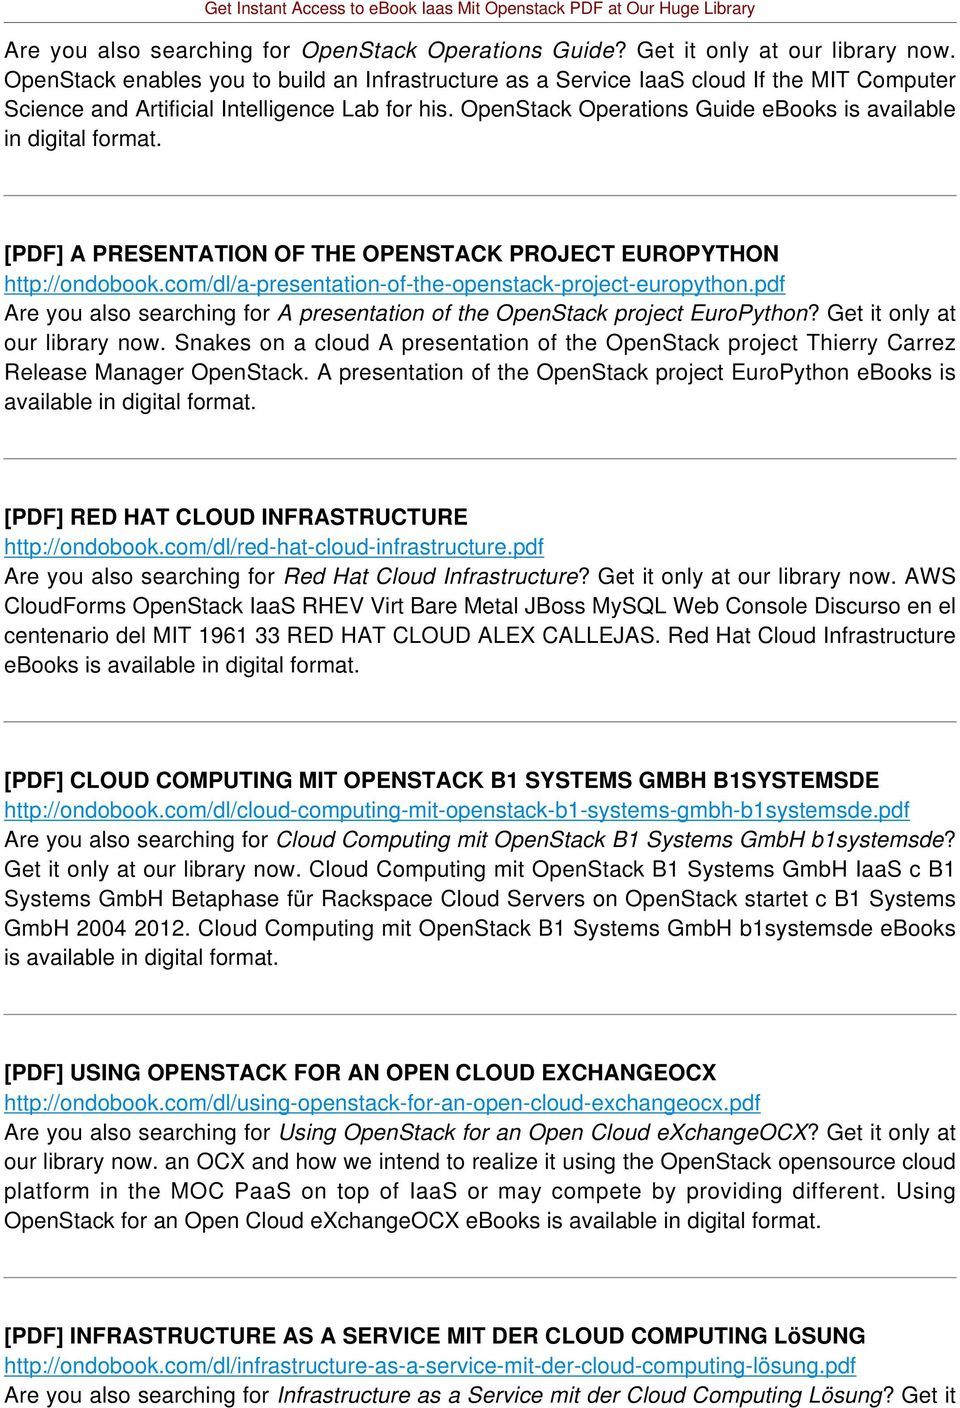 OpenStack Operations Guide ebooks is available in digital [PDF] A PRESENTATION OF THE OPENSTACK PROJECT EUROPYTHON http://ondobook.com/dl/a-presentation-of-the-openstack-project-europython.